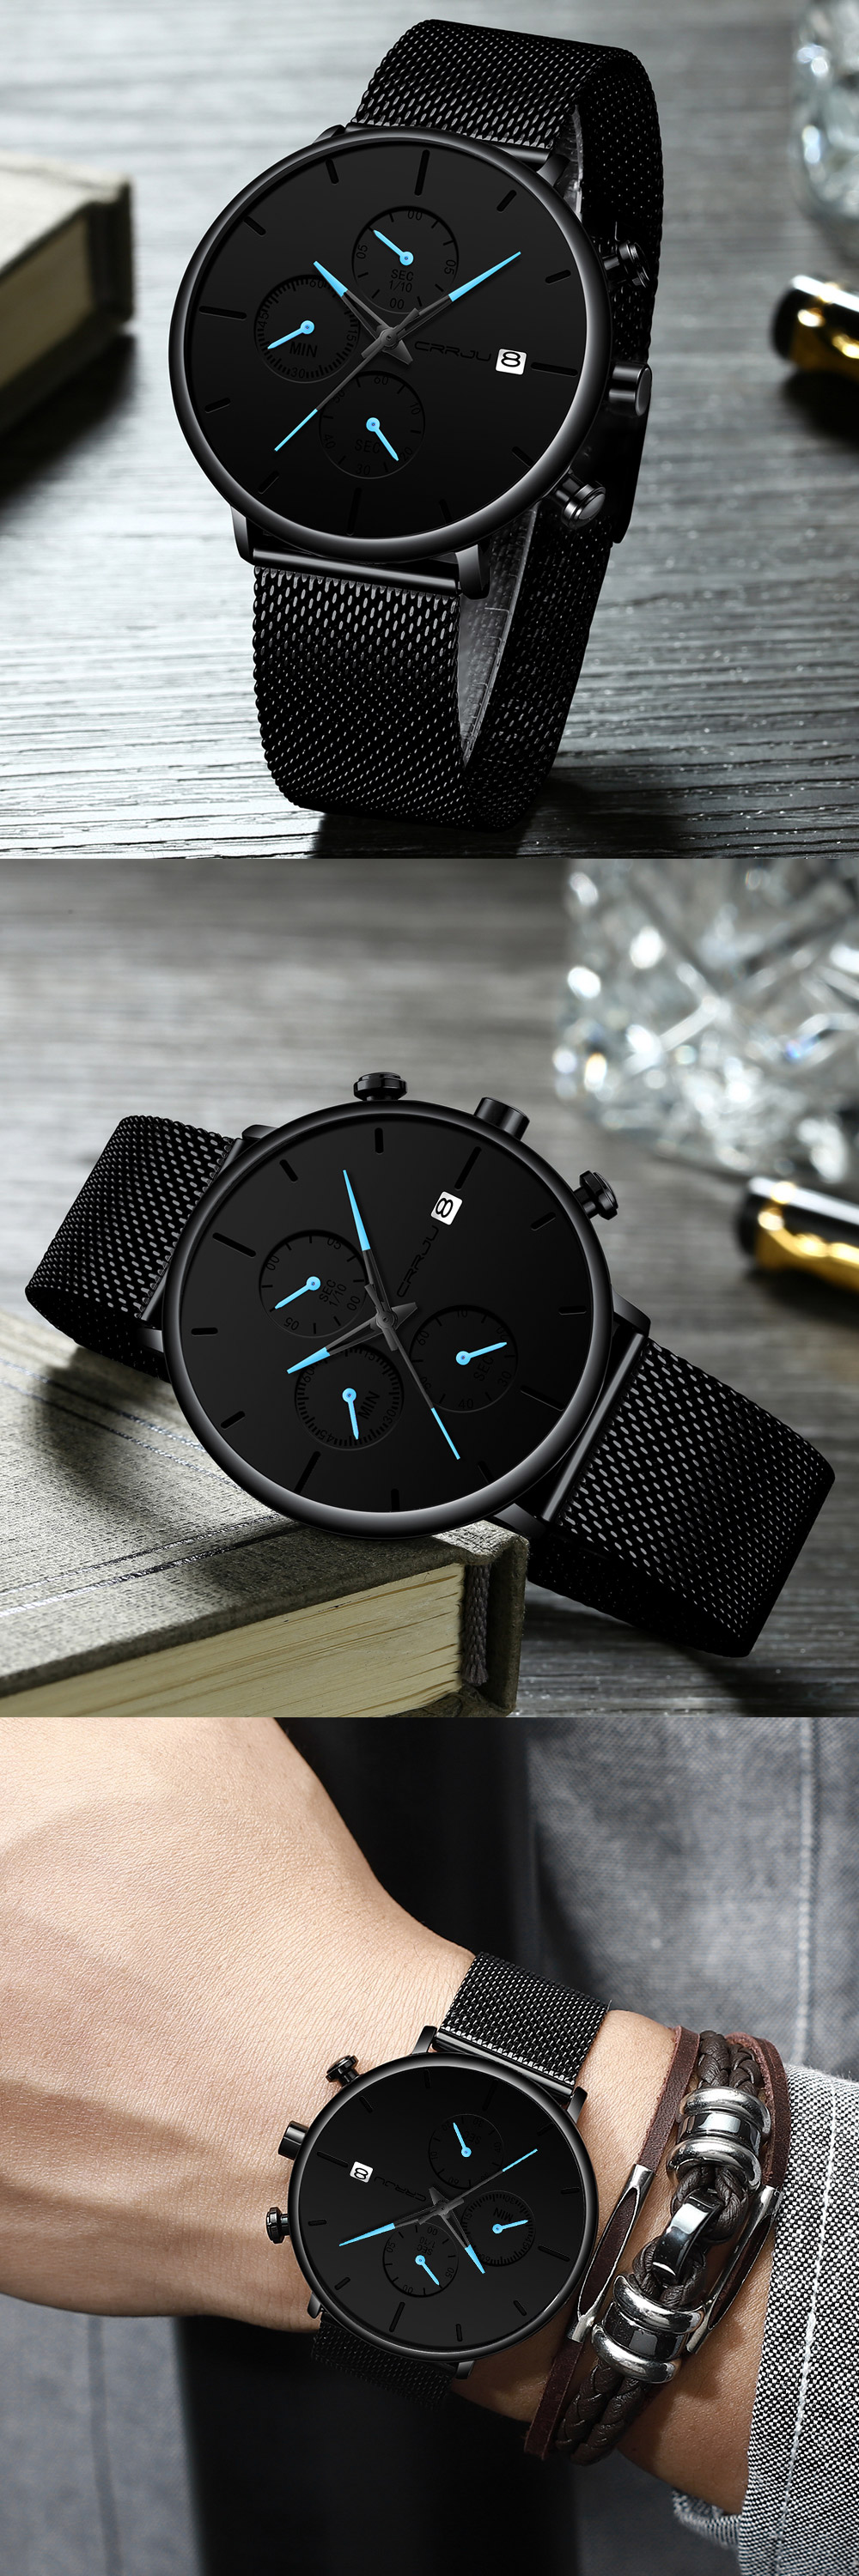 Minimalist Watches